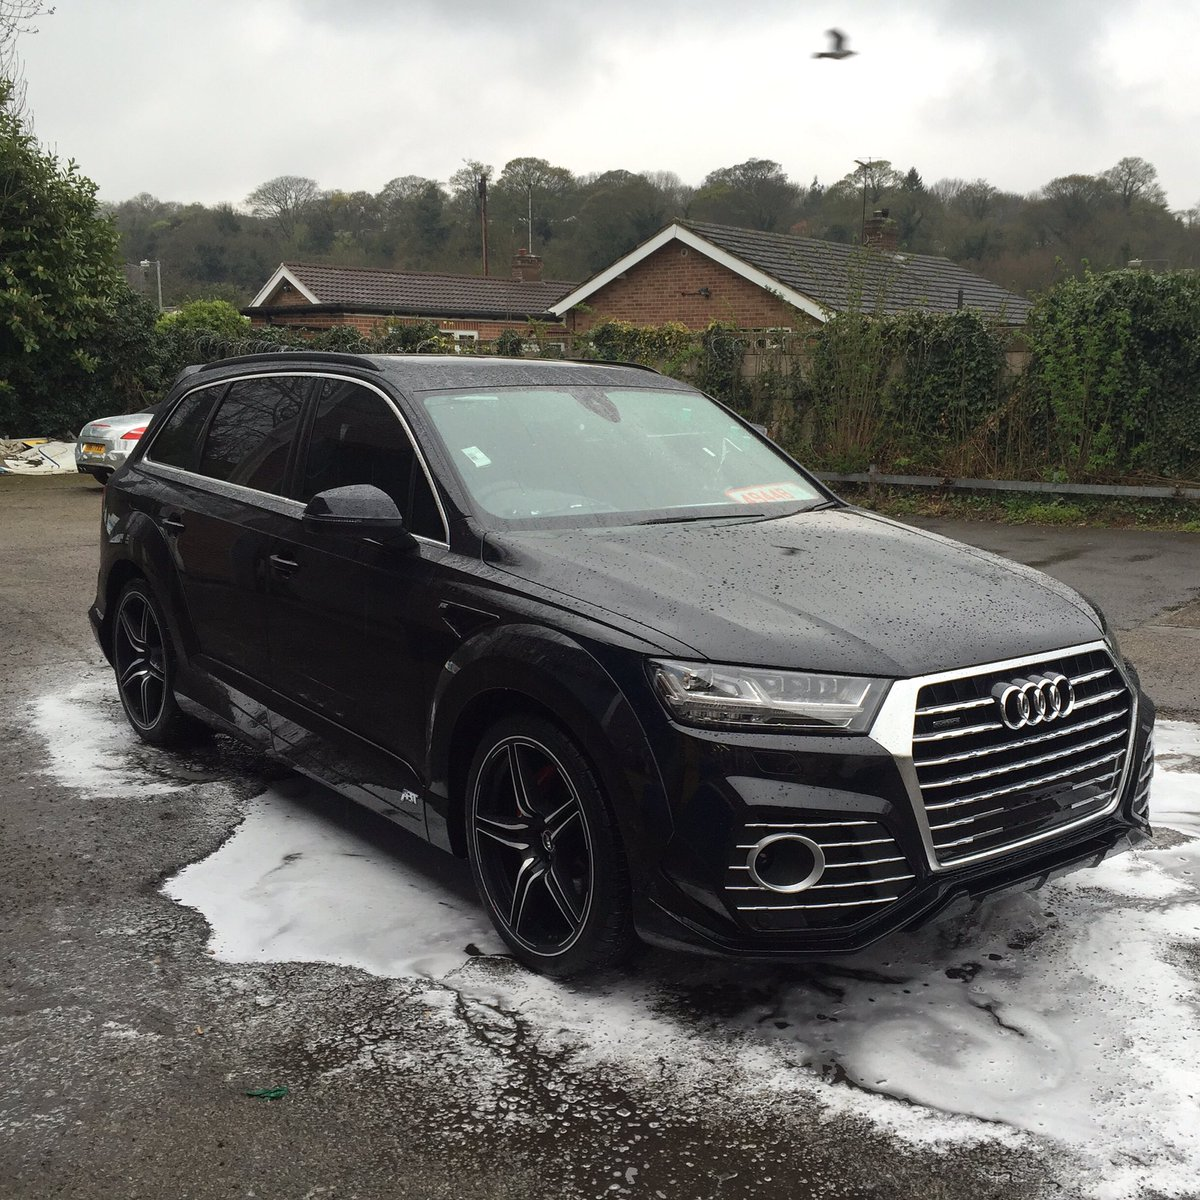 """AC13 Premier on Twitter: """"All new Audi Q7 with full ABT conversion ..."""